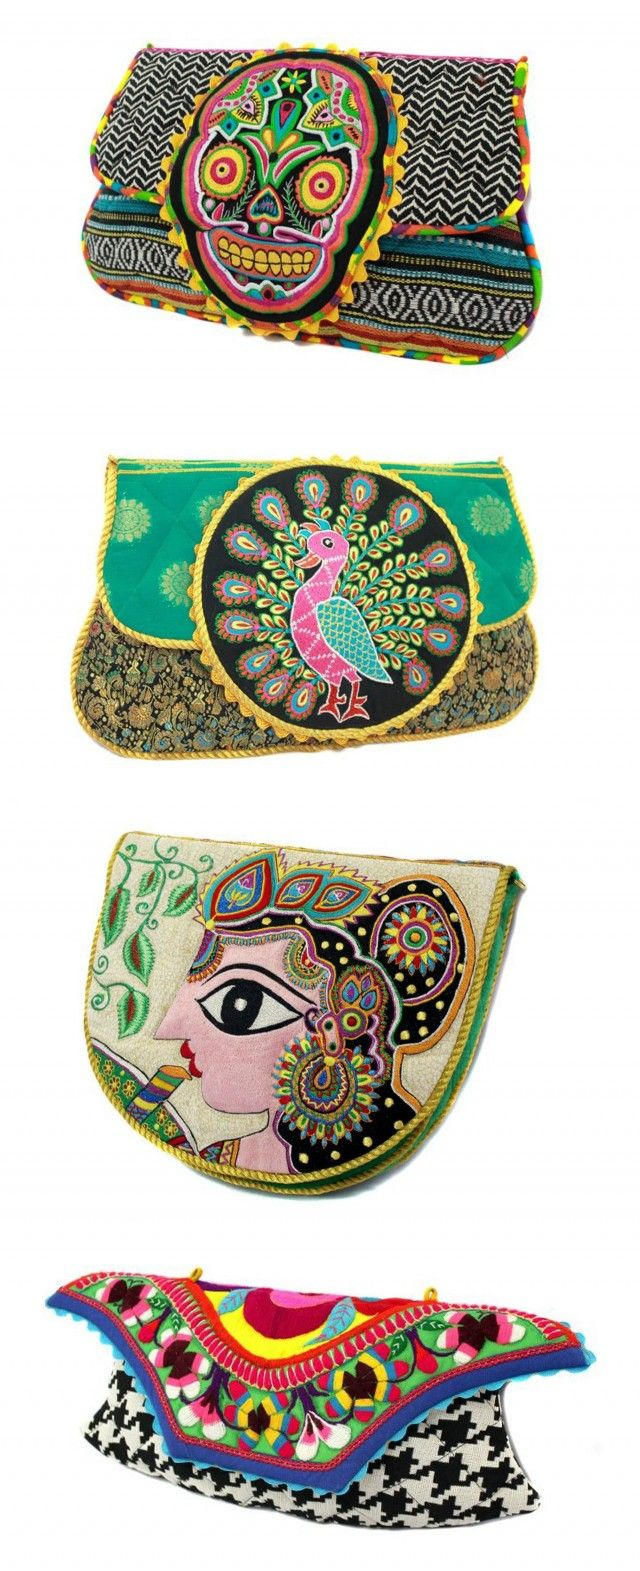 ~Ragmatazz Clutch Bags | The House of Beccaria~